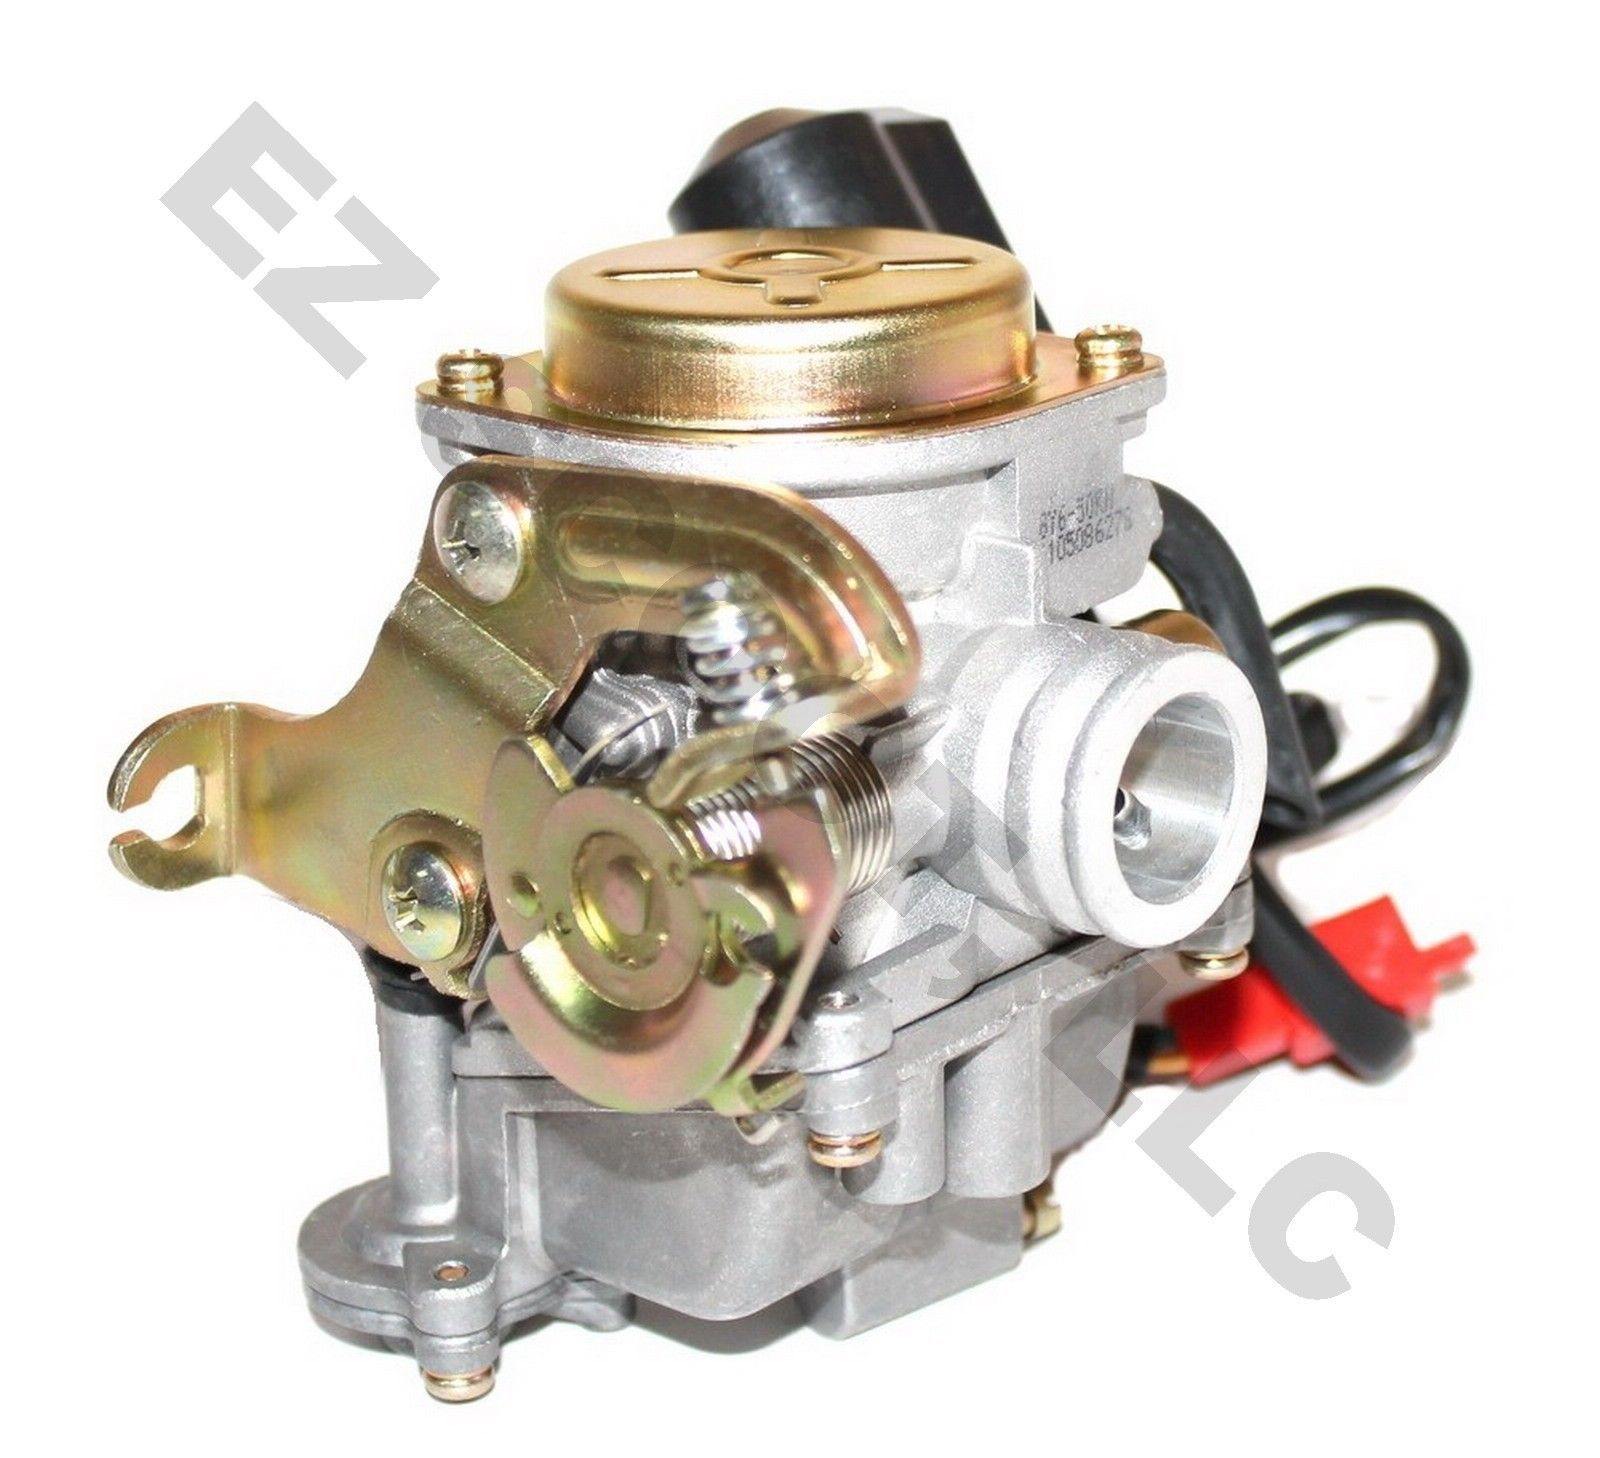 Details about HIGH PERFORMANCE VARIATOR RACING 8 GR 50-80cc